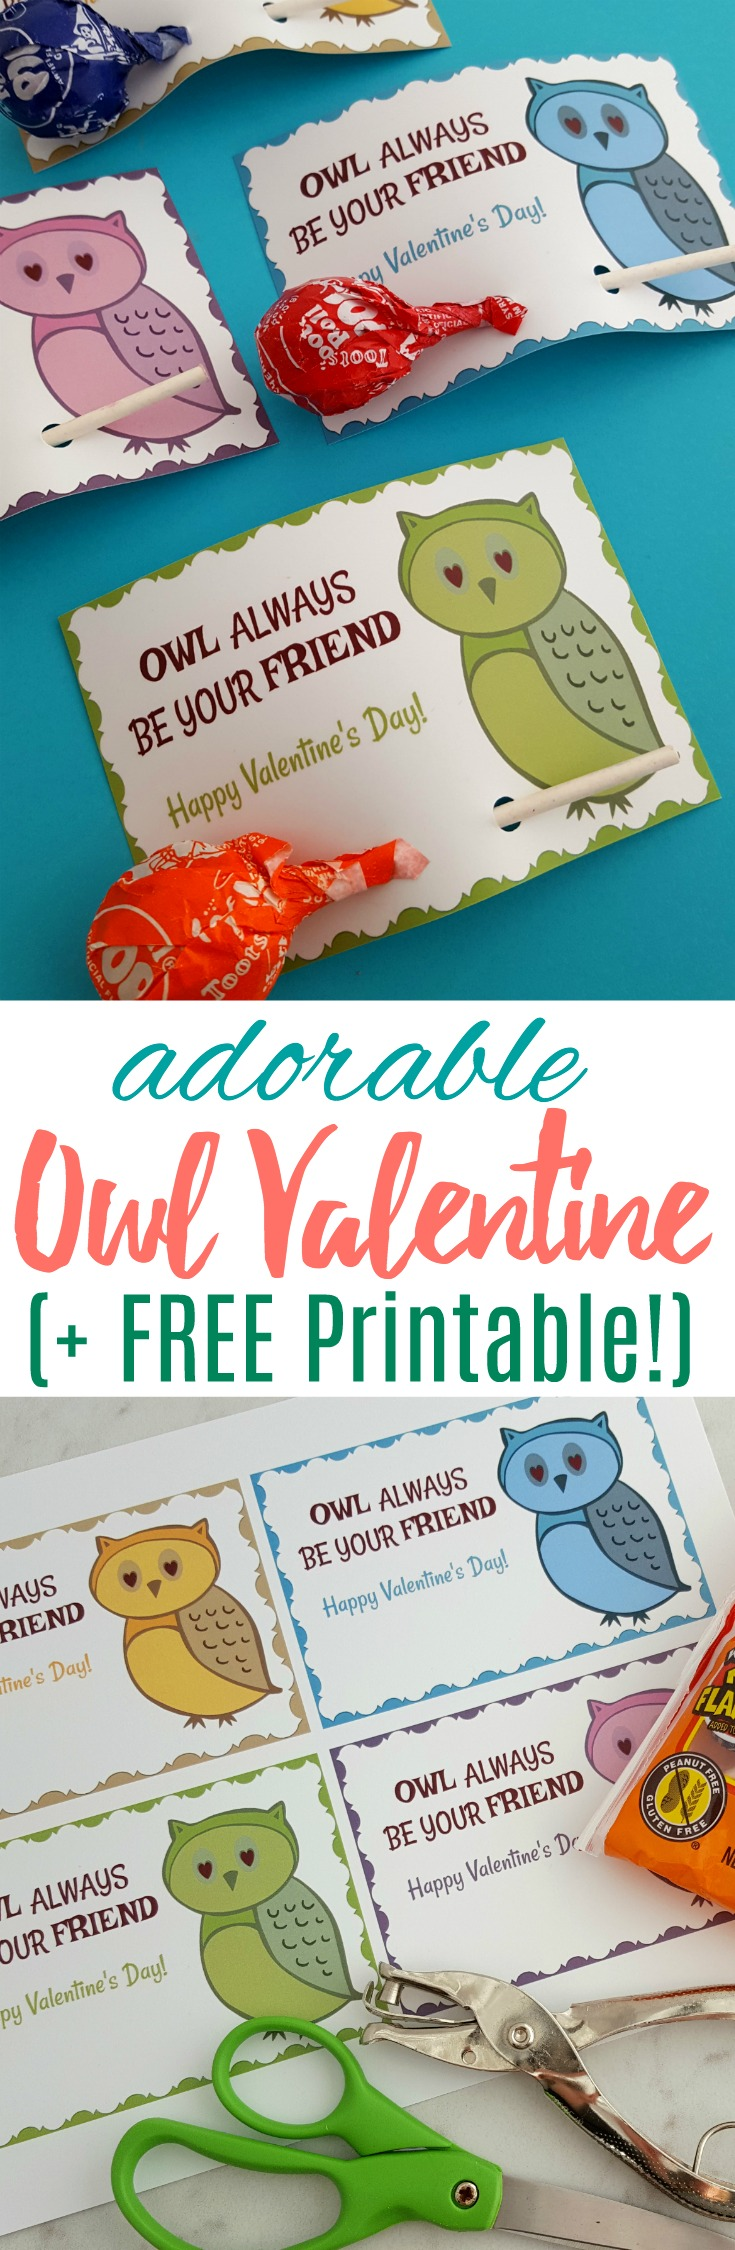 Grab these free Owl printable Valentine's Cards and attach a tootsie roll pop - they'll be a big hit for your child's next Valentine's party!